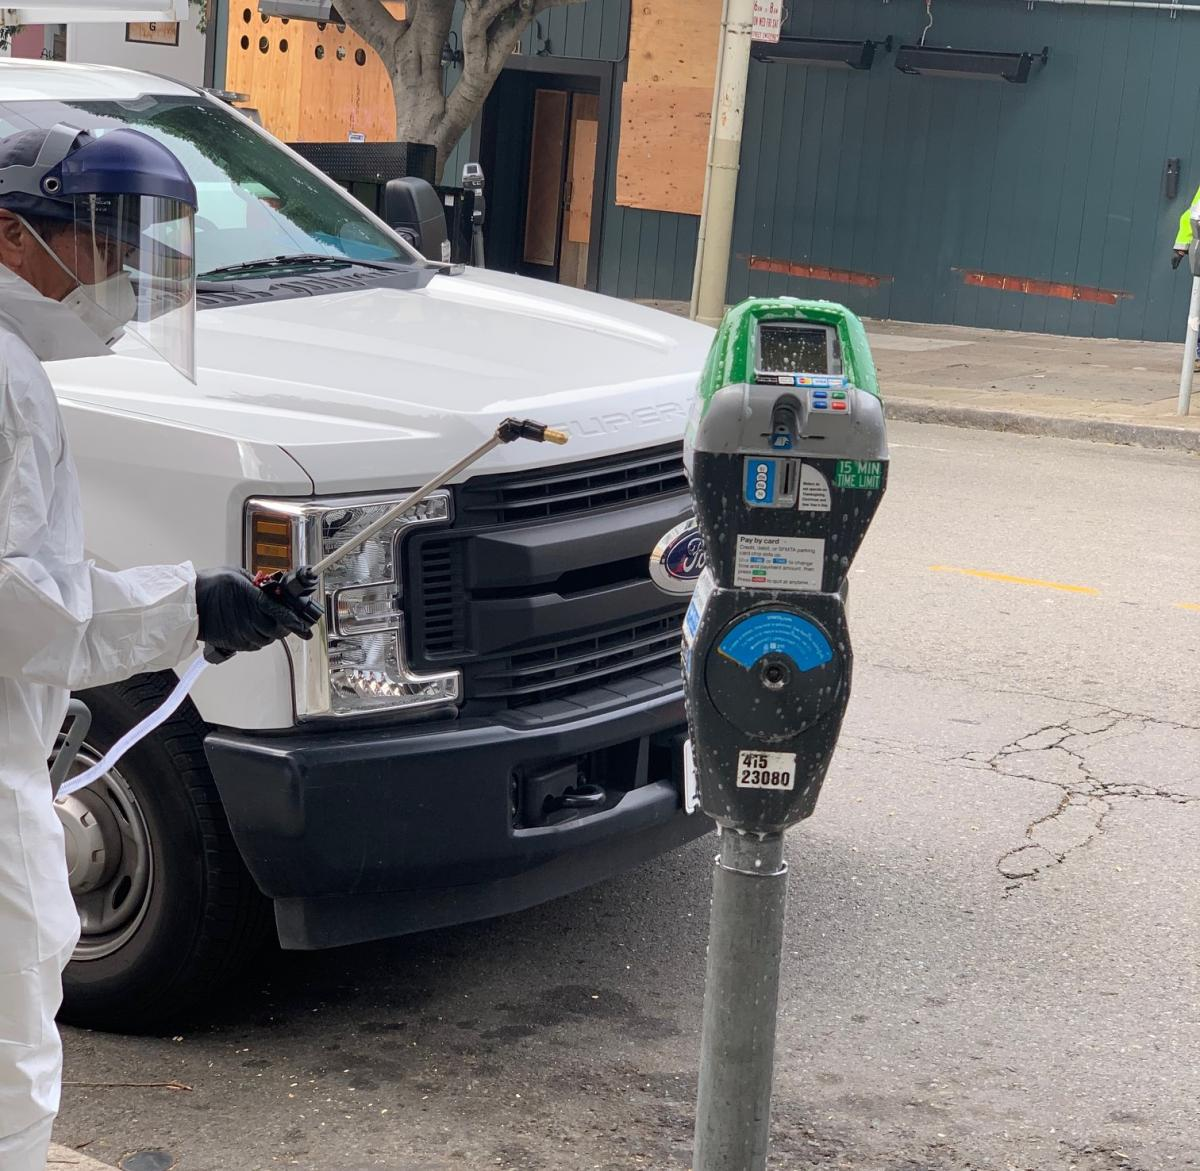 Parking Meter being sanitized by someone in a safety suit with visor